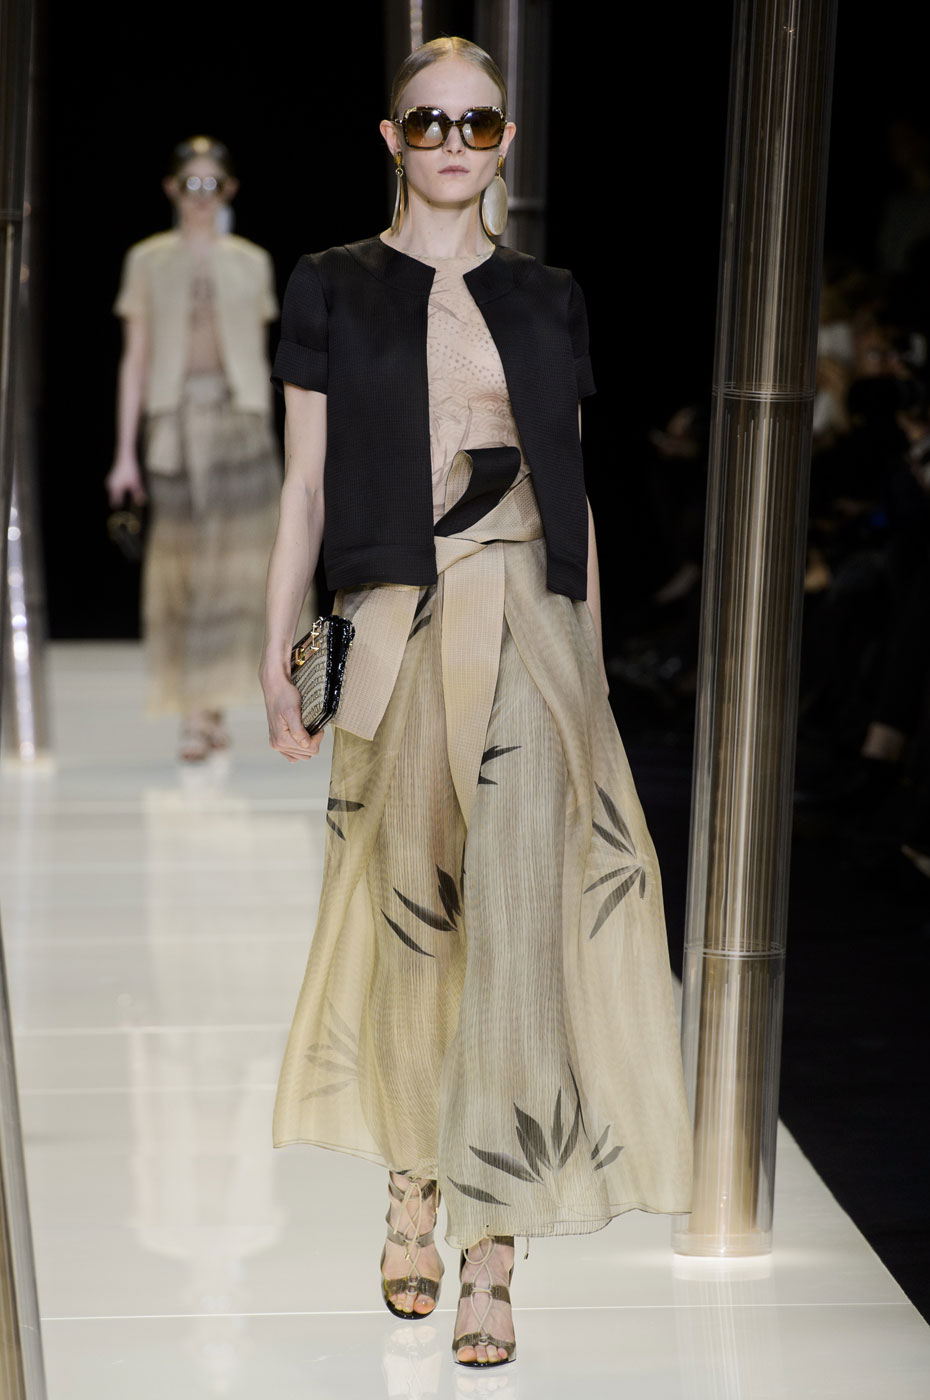 Giorgio-armani-Prive-fashion-runway-show-haute-couture-paris-spring-2015-the-impression-021